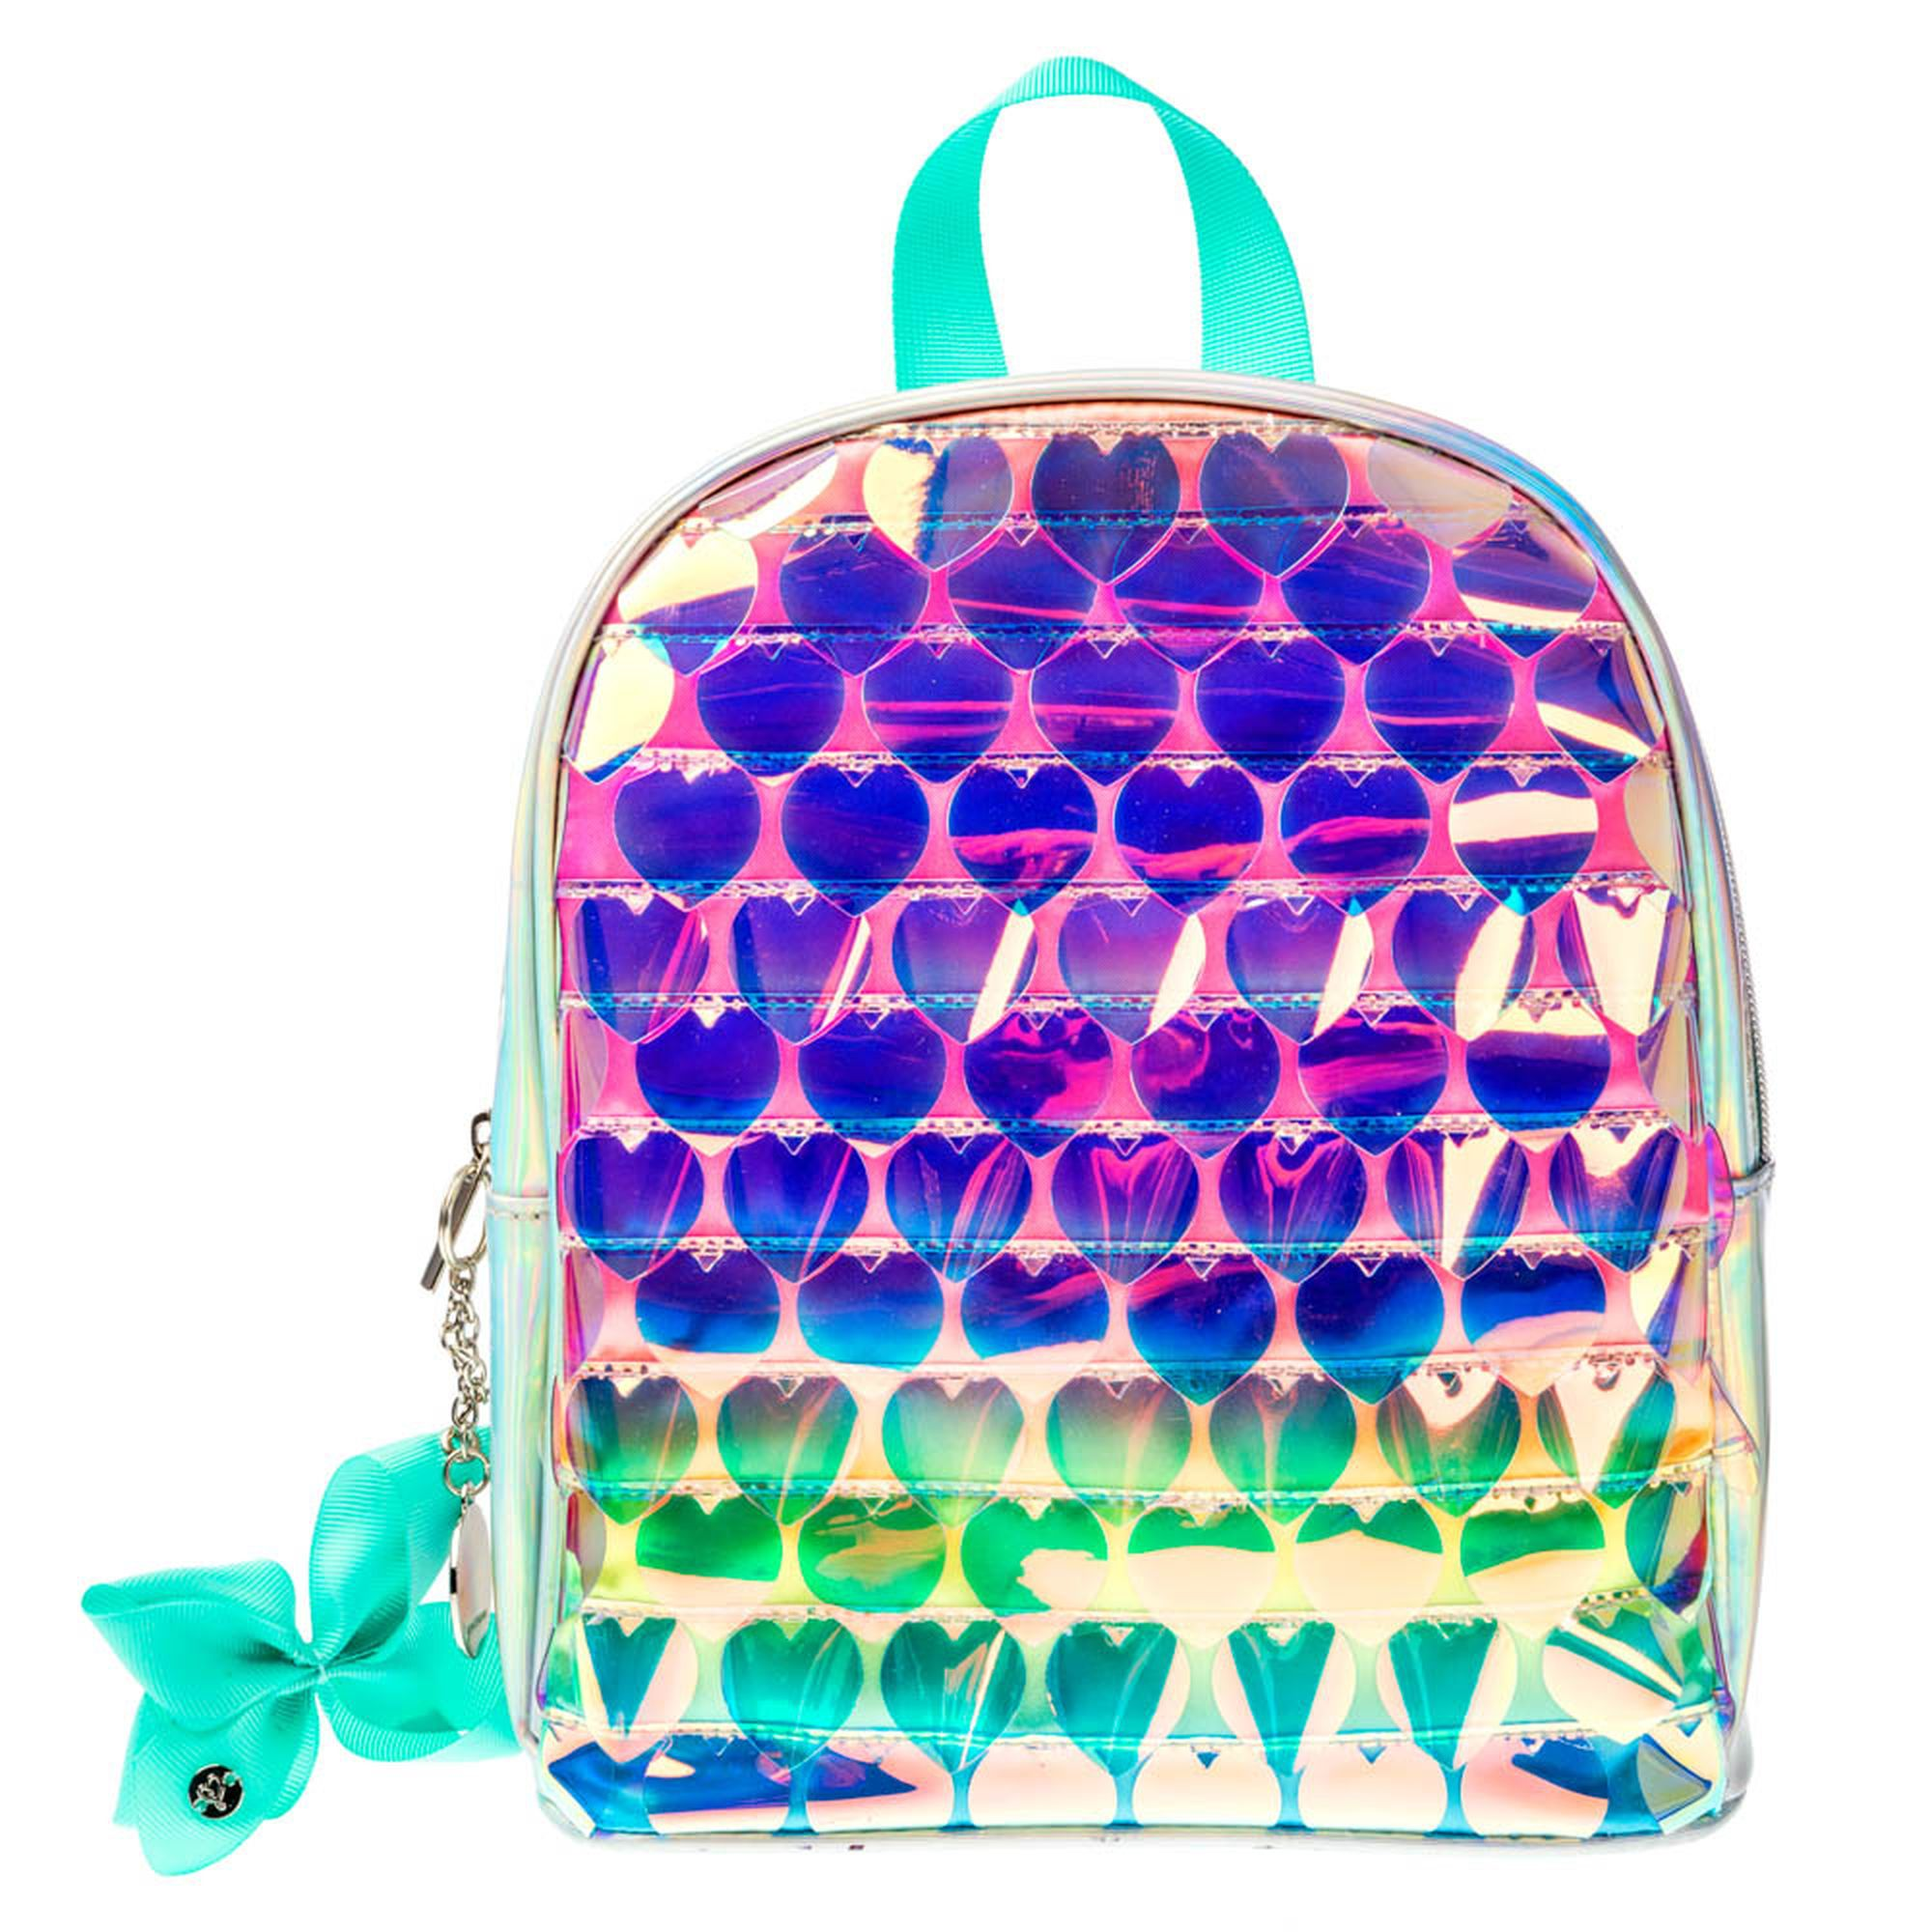 New Claires Back to School Girls Backpacks Shoulder Strap Ruck Sacks For All Occasions